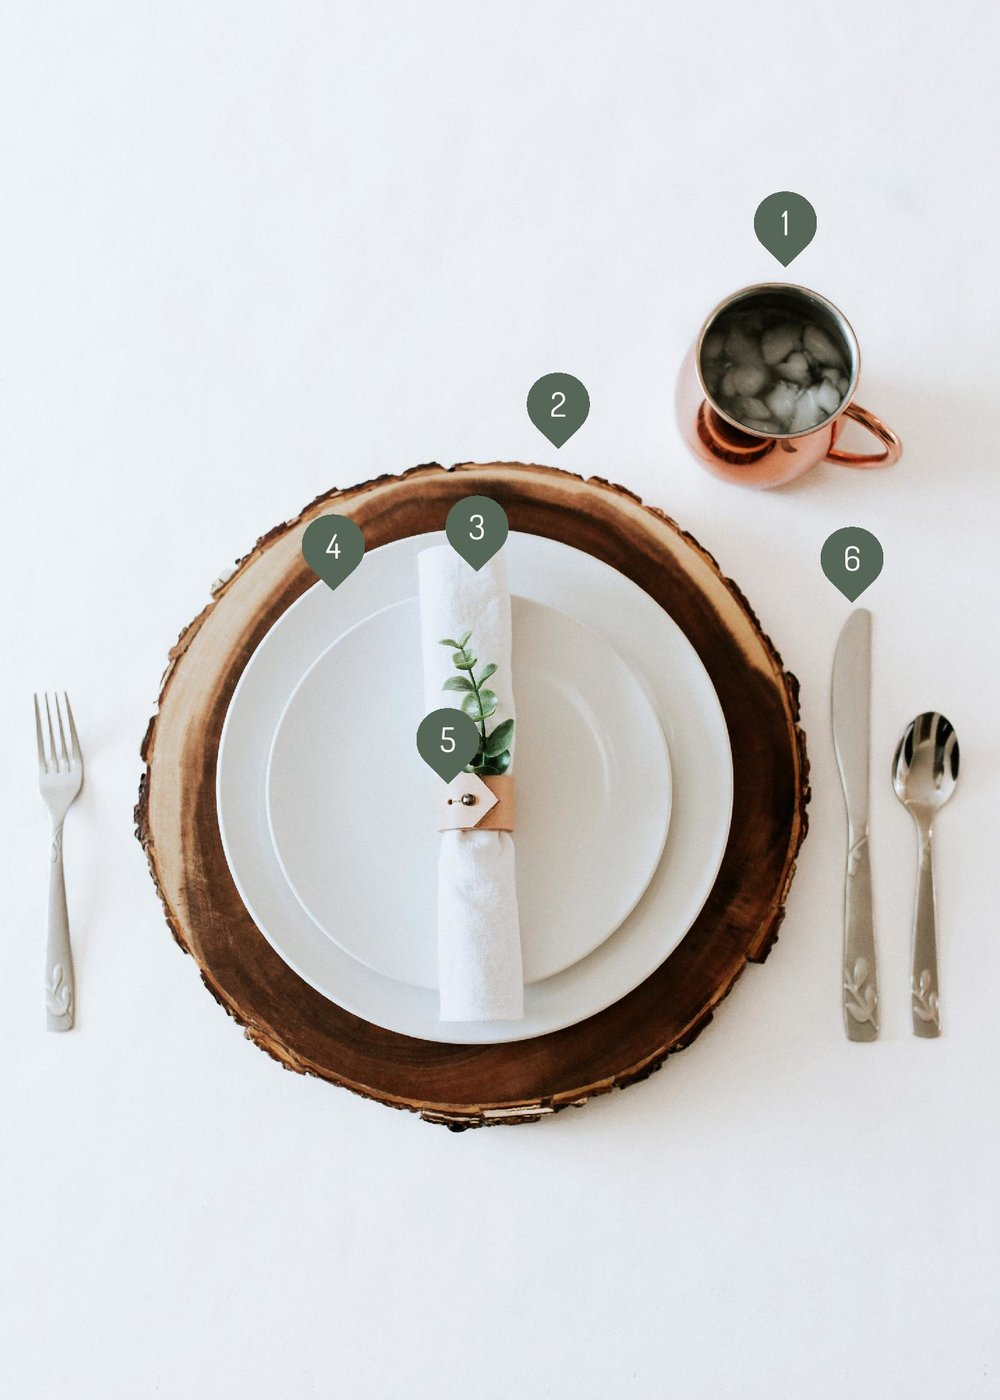 How to create / DIY a natural minimal table setting - wood charger, white plates, white napkin, leather napkin rings, greenery sources and links